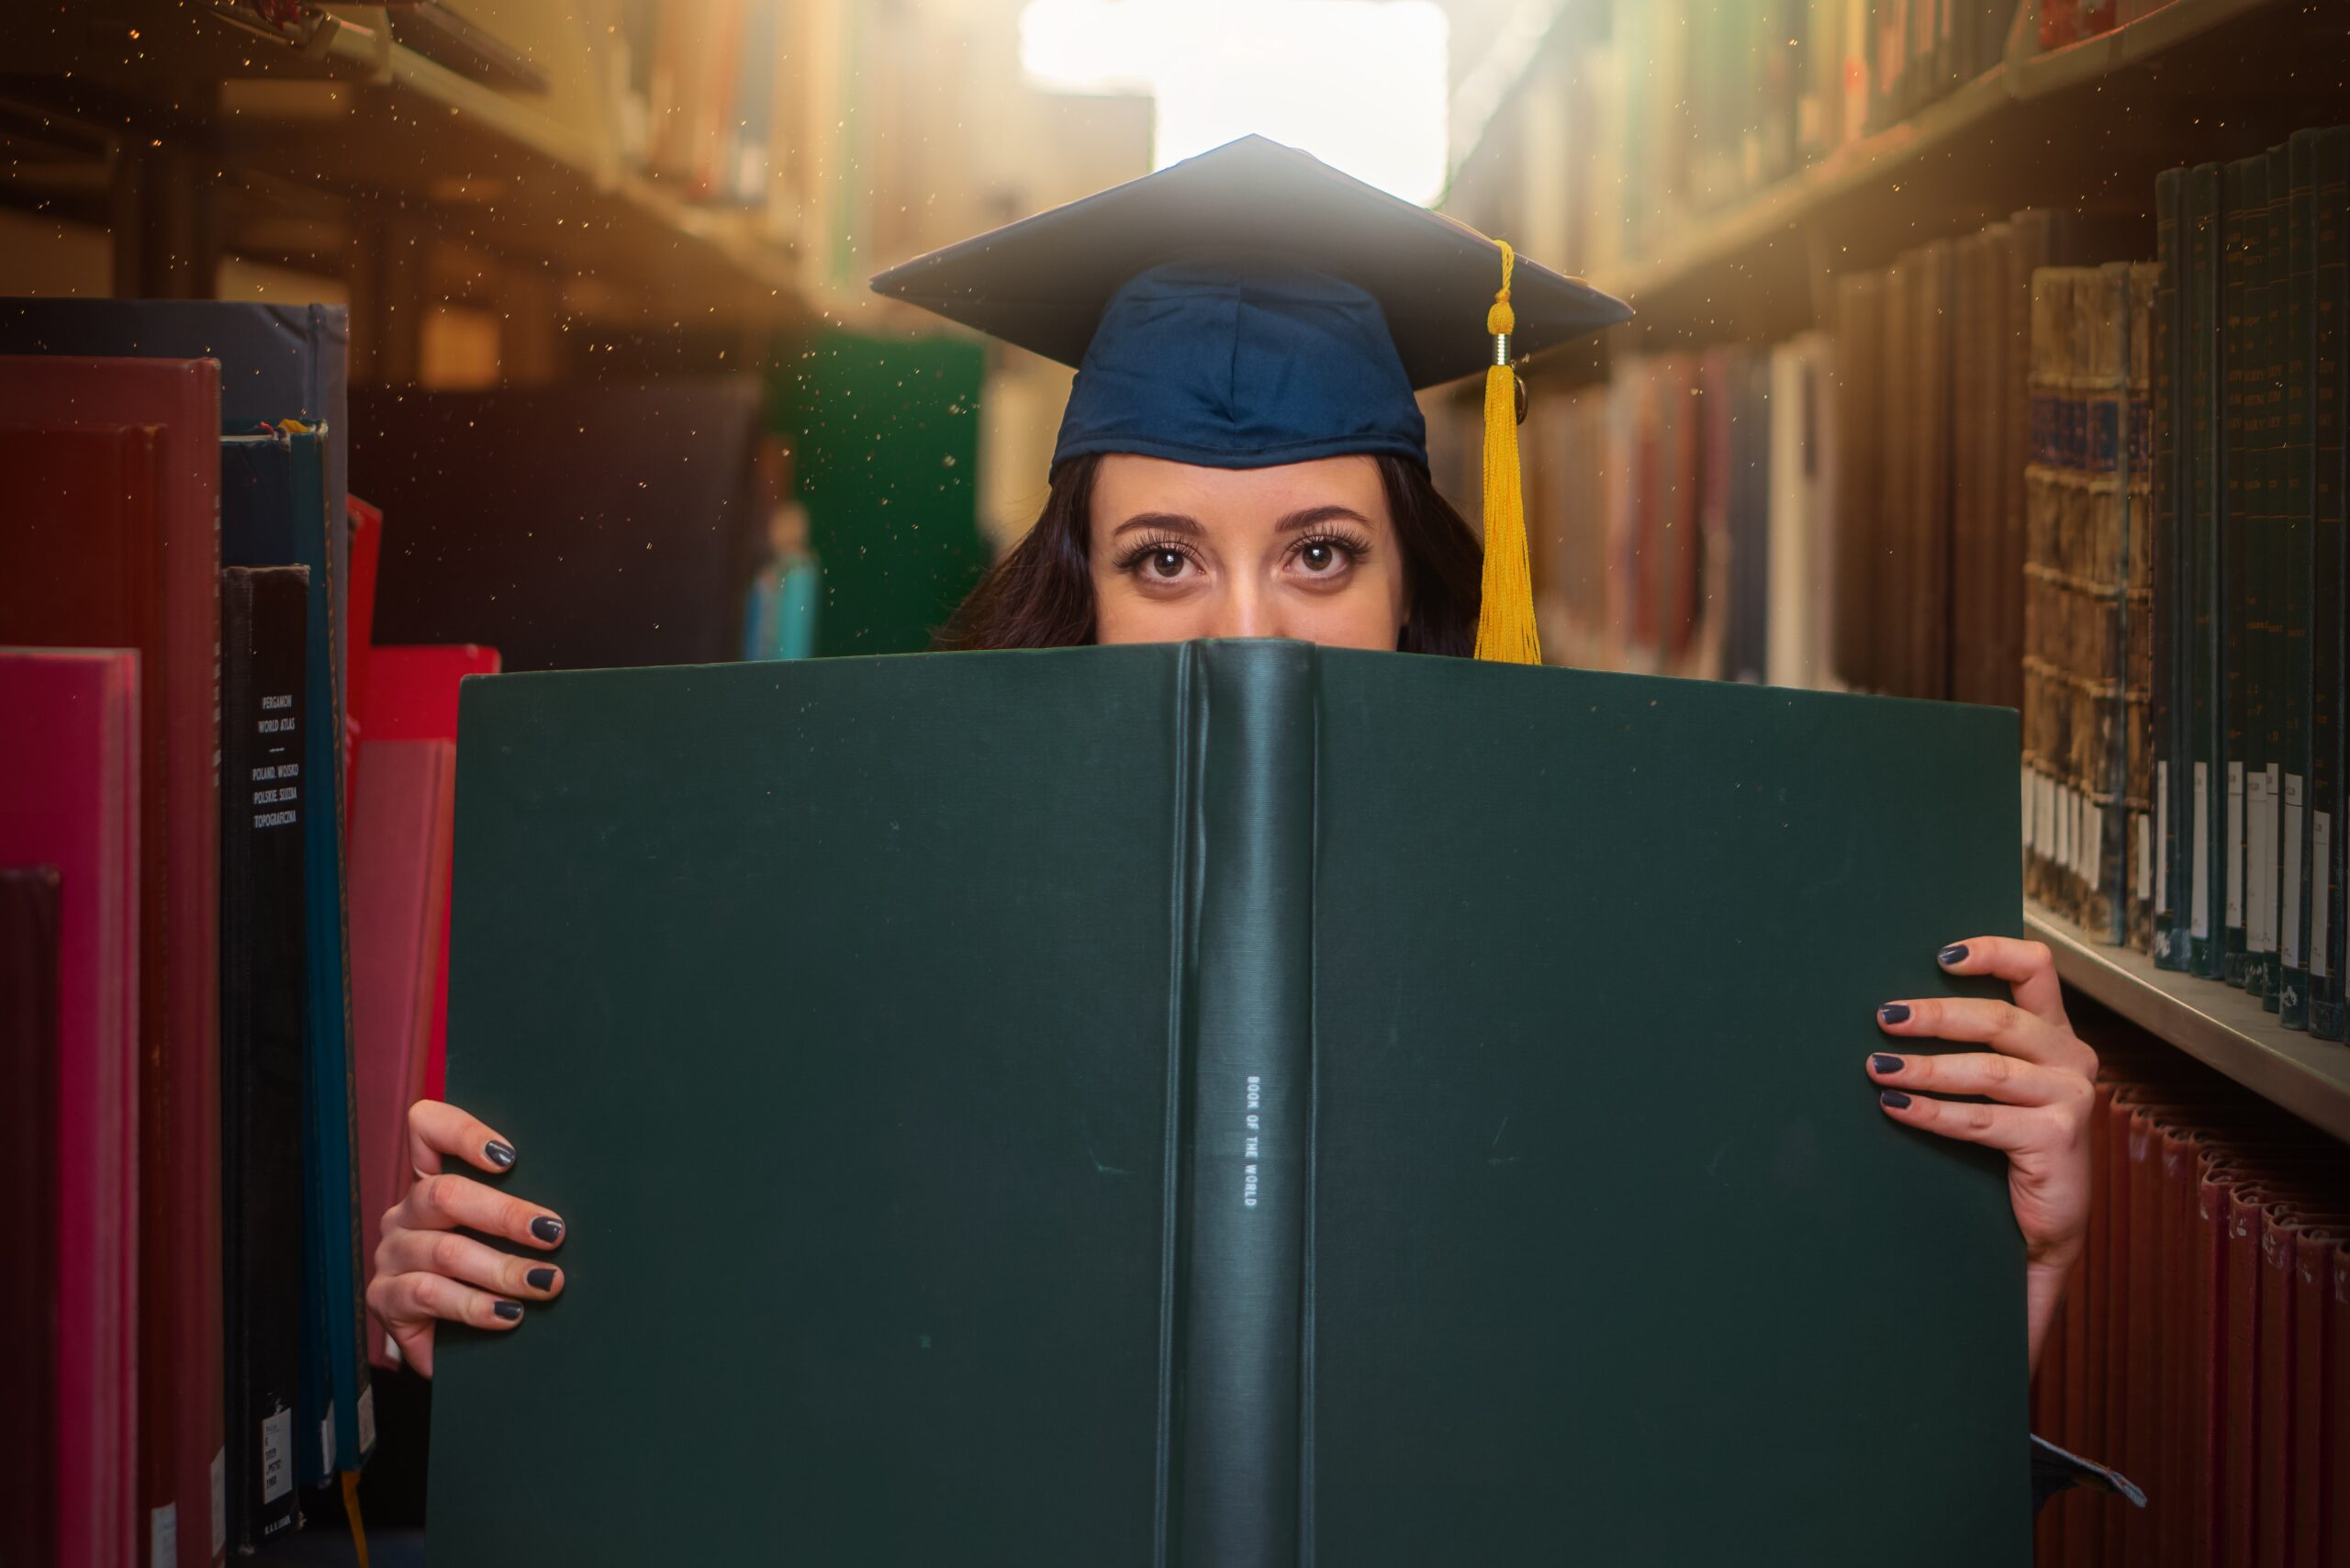 A happy student wearing a graduation cap, peering over the top of a large book, in a sunlit university library.